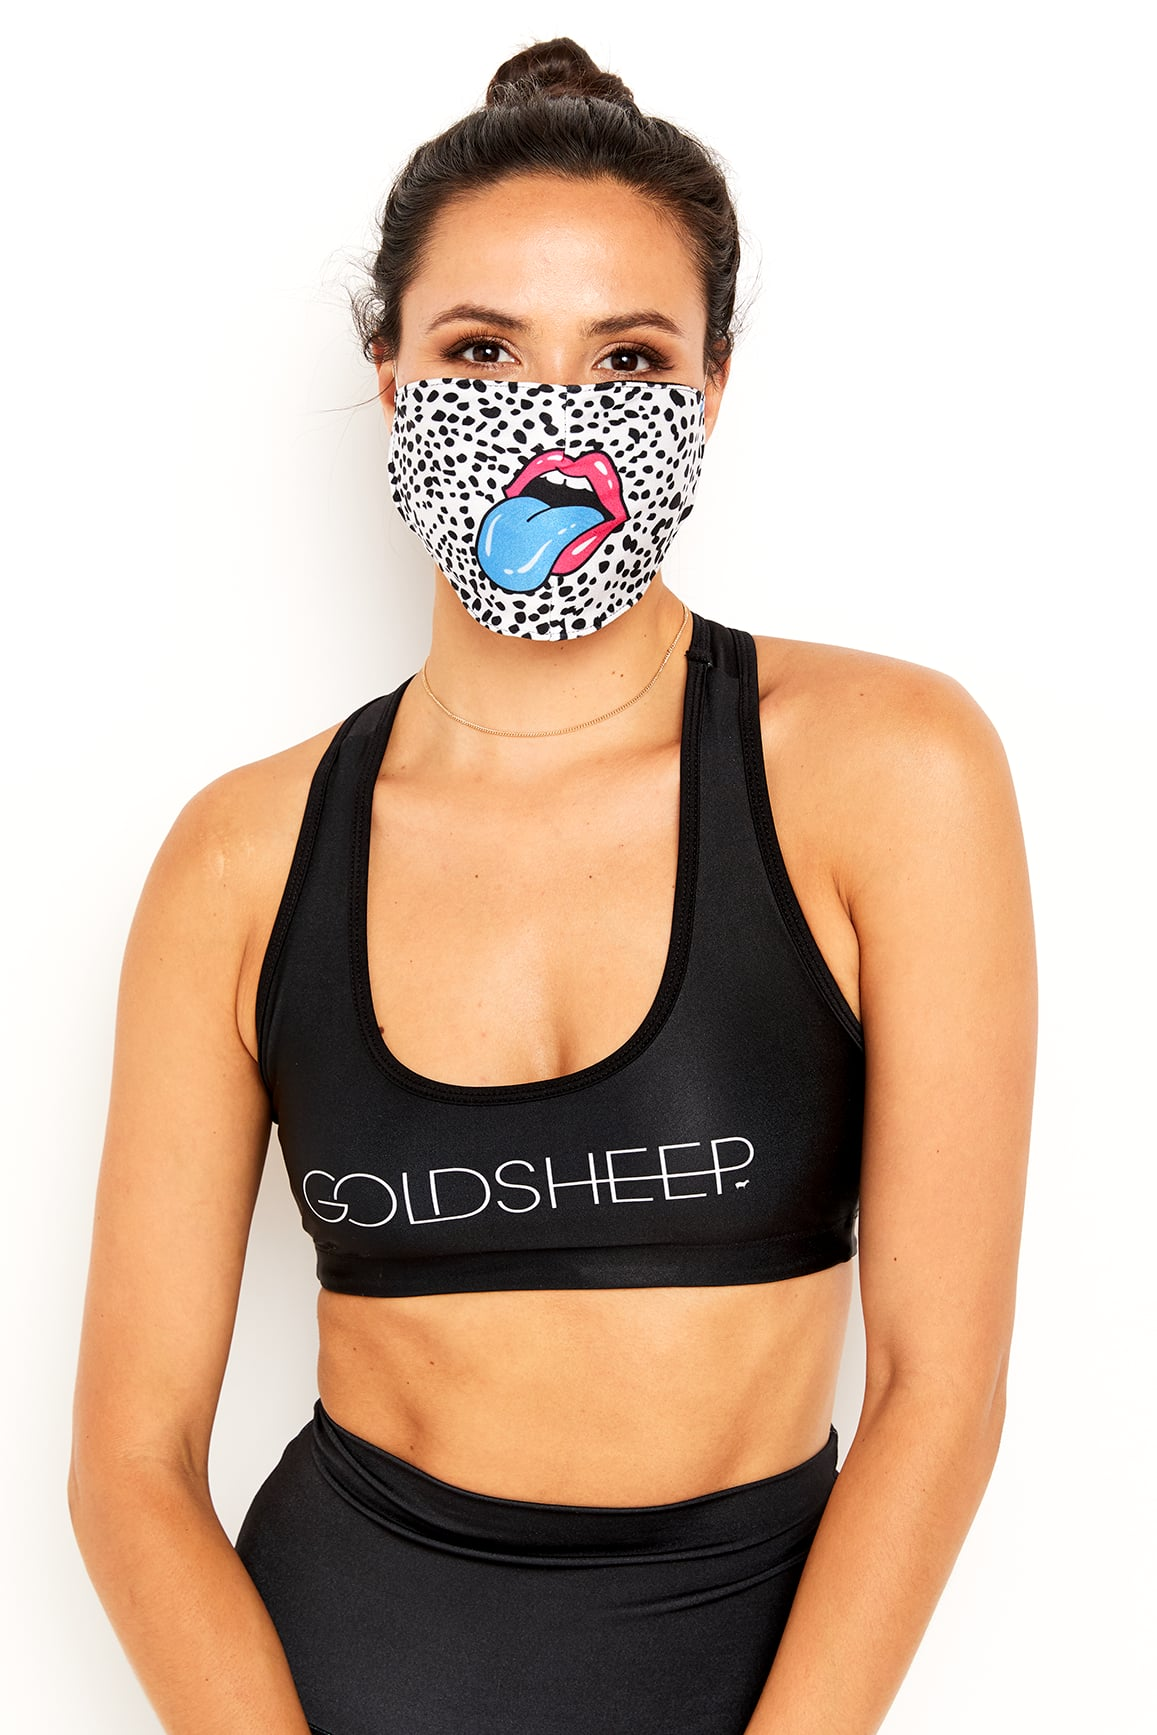 LLDF Face Cover Designed Comfort Fashion Style HD Transparent Face Shield M